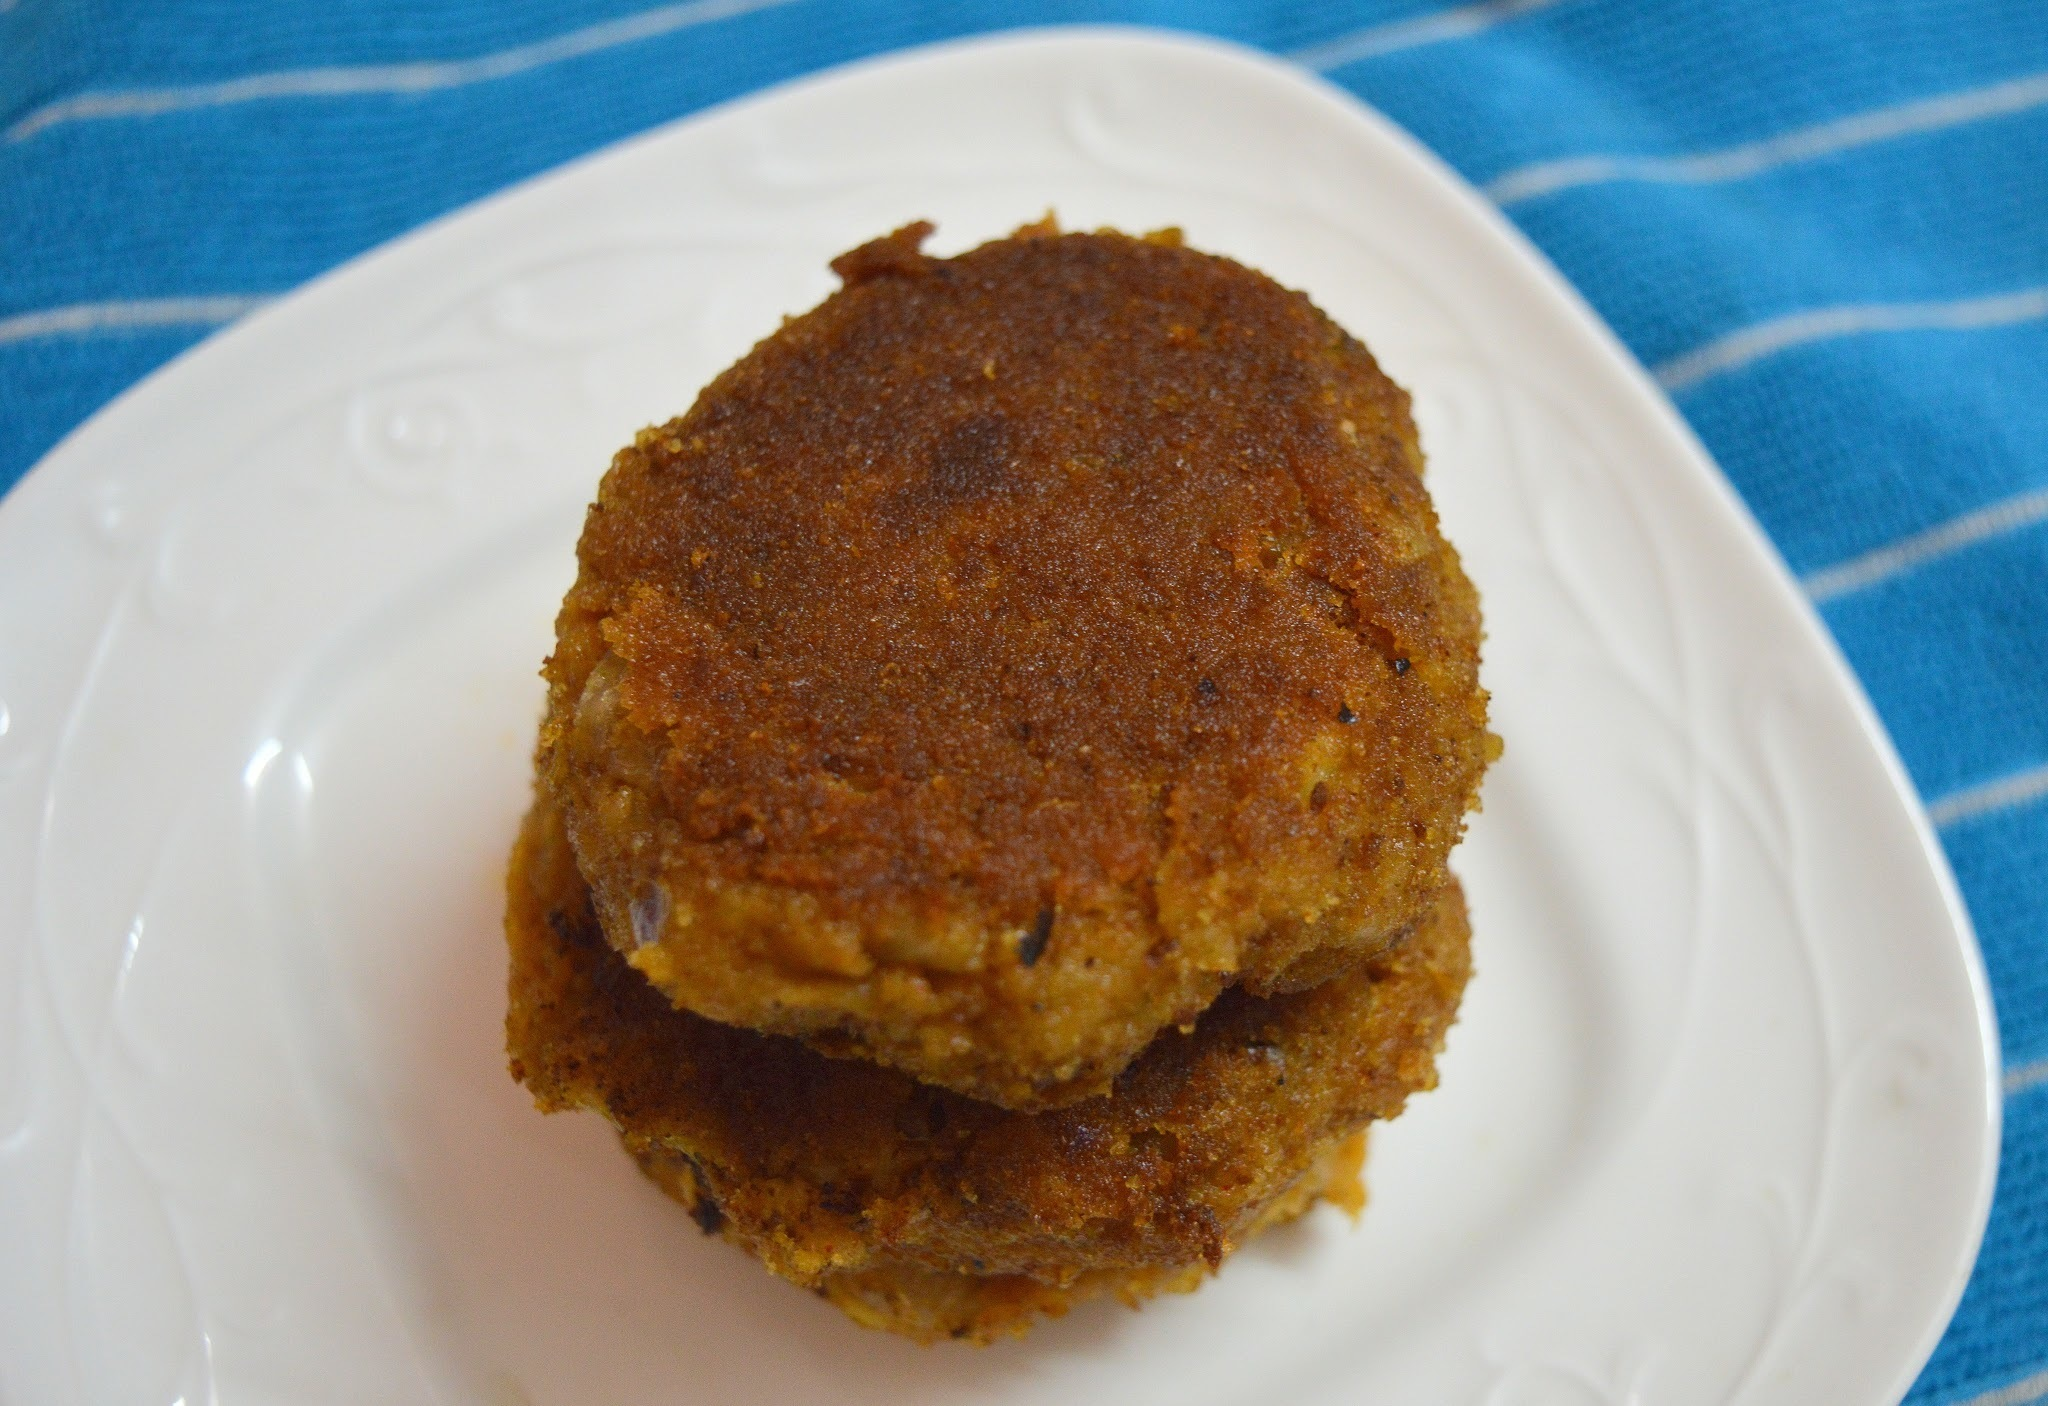 Mealmaker / Soya chunk Patties  | Mini soya granules patties | Vegan Burger Patties